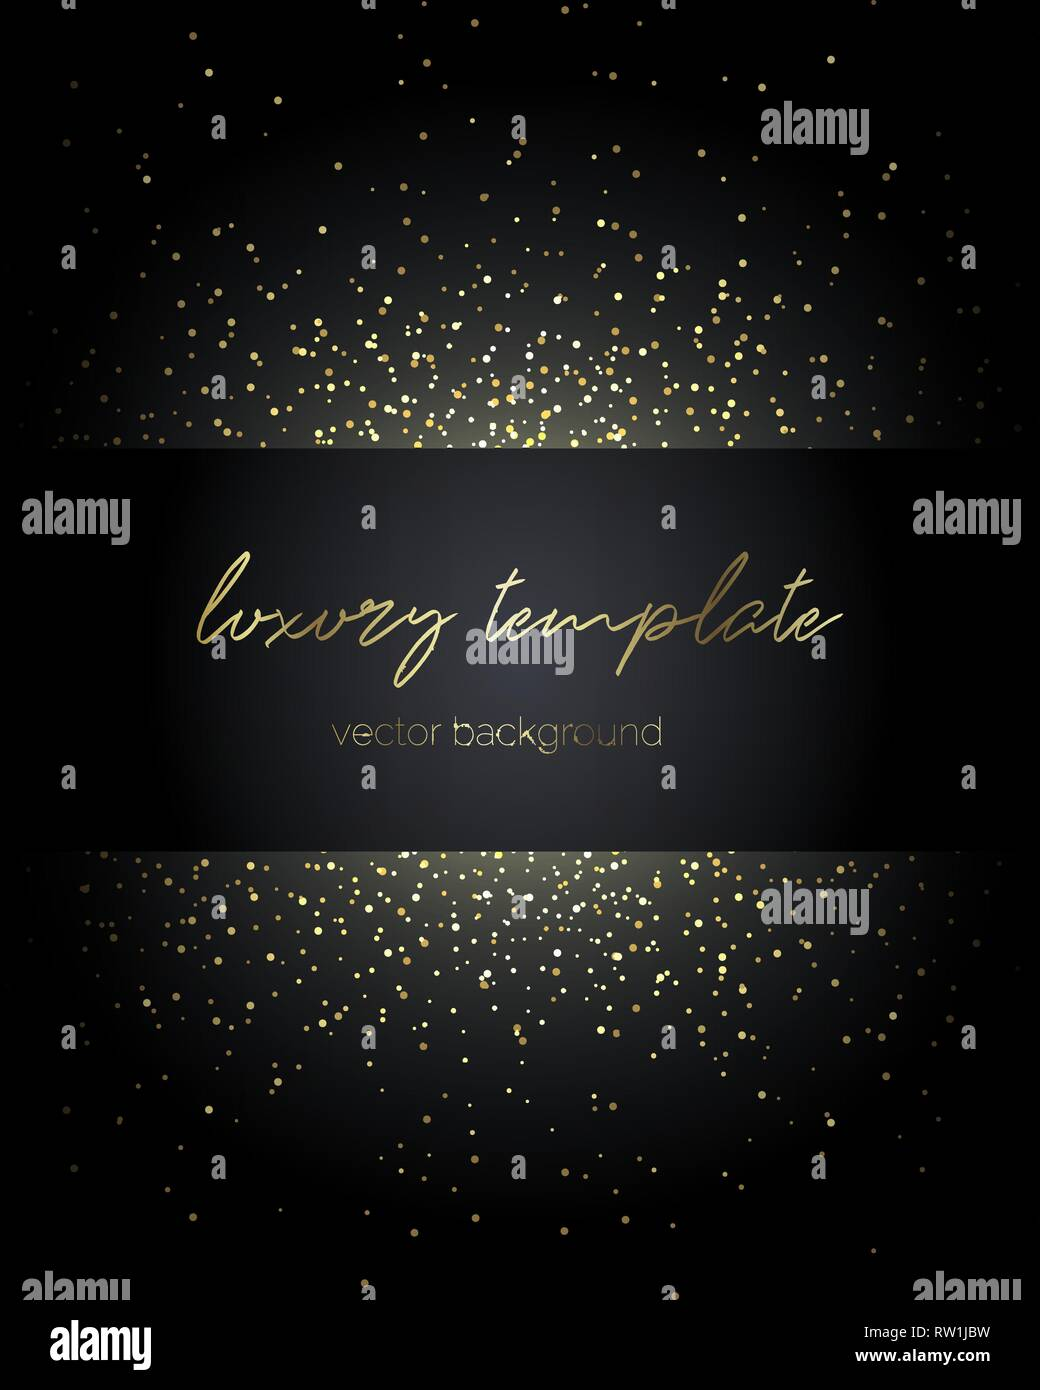 Gold particles. Premium template for text message. - Stock Image